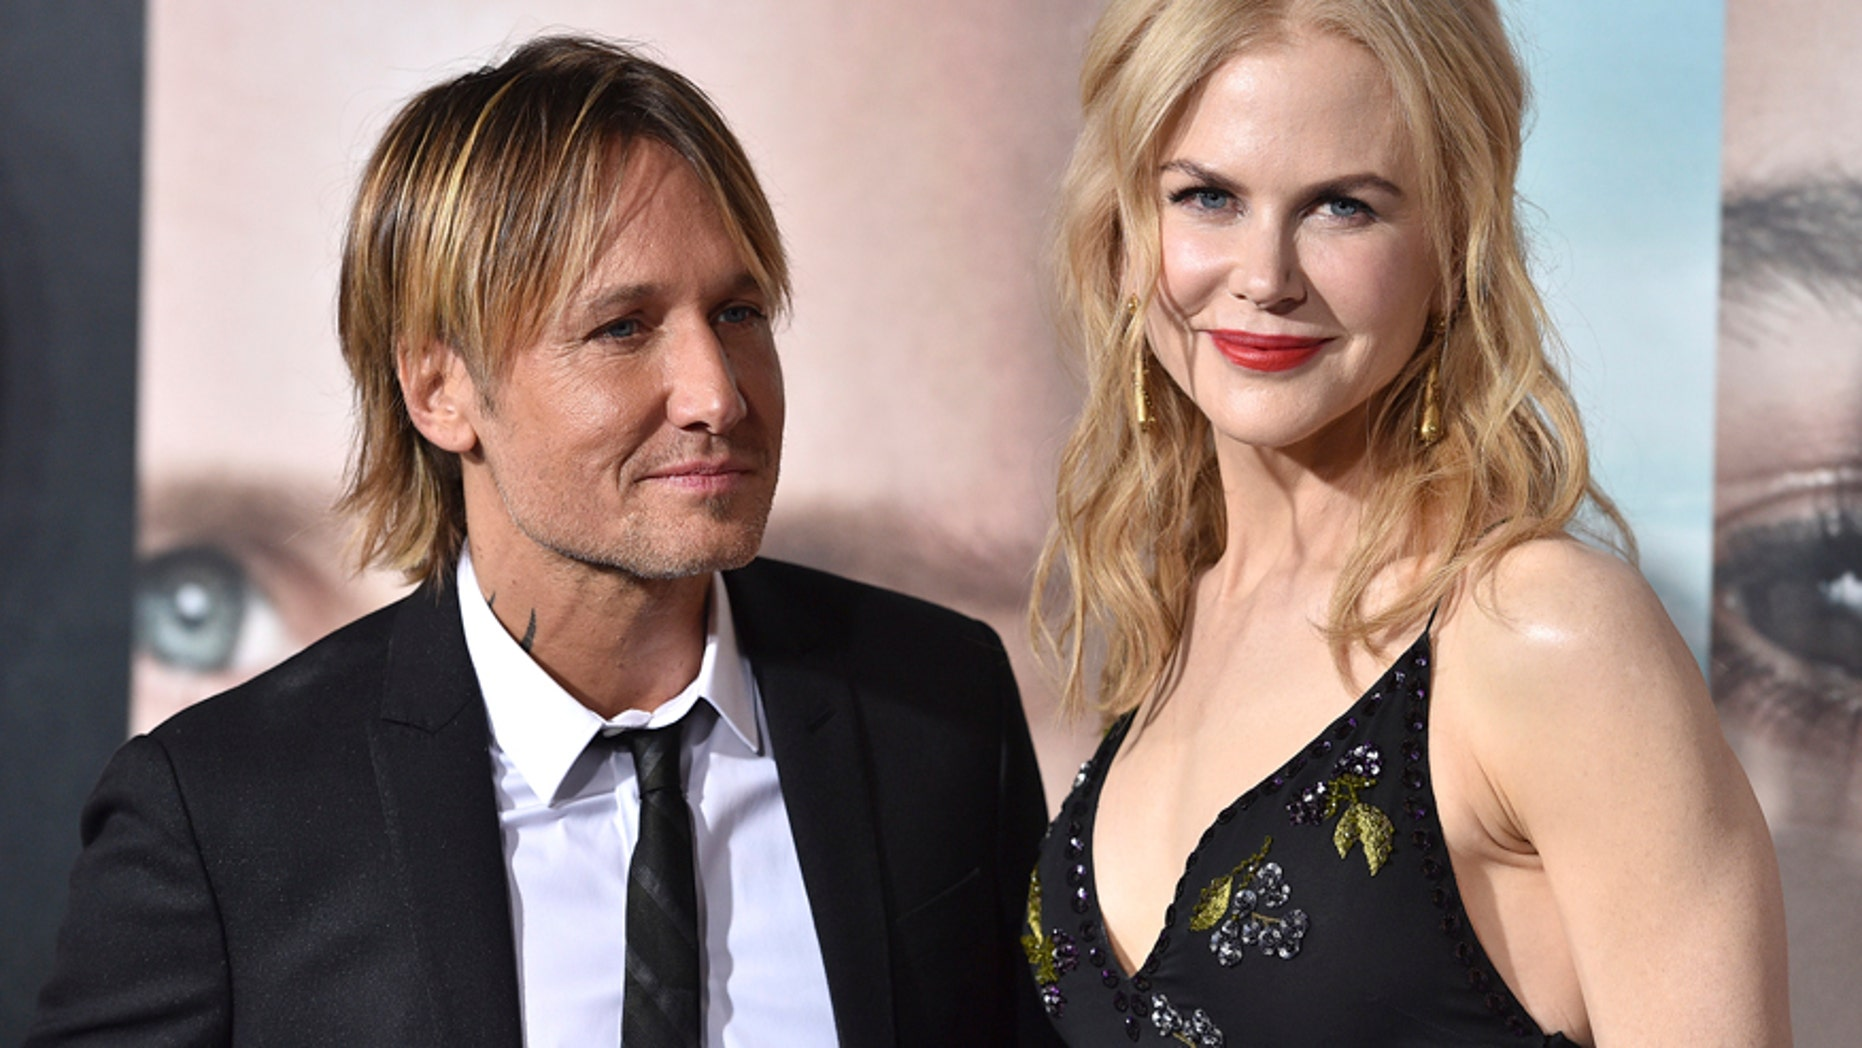 """Keith Urban, left, and Nicole Kidman arrive at the Los Angeles premiere of """"Big Little Lies"""" at the TCL Chinese Theatre on Tuesday, Feb. 7, 2017."""